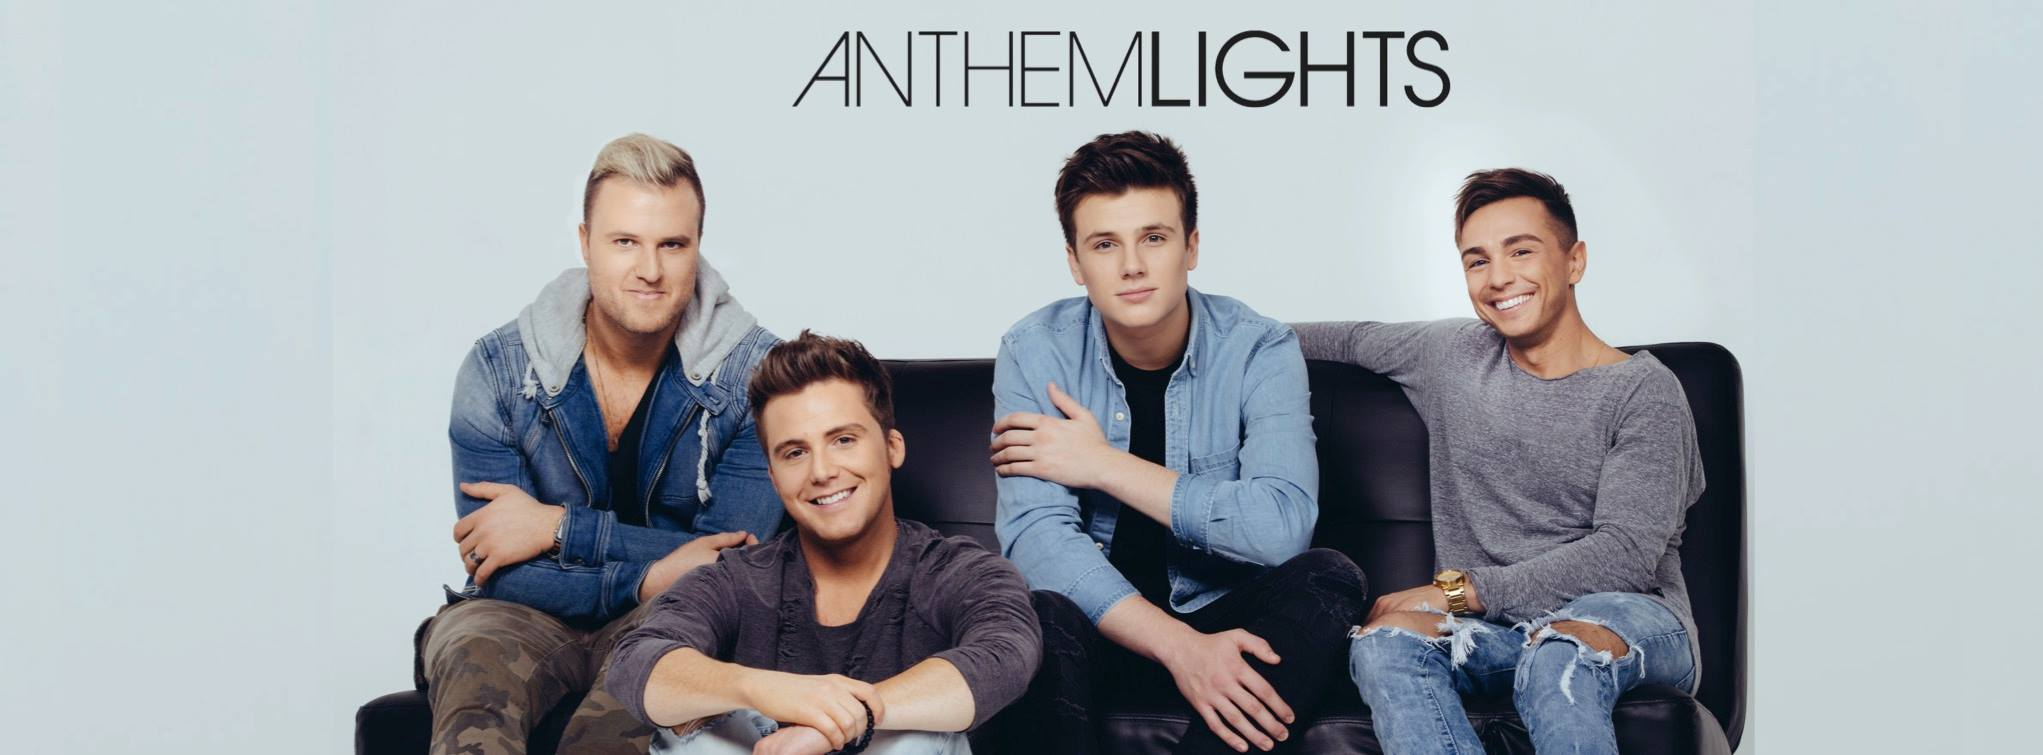 This Christmas and Jingle Bells Mashup by Anthem Lights - My Merry ...